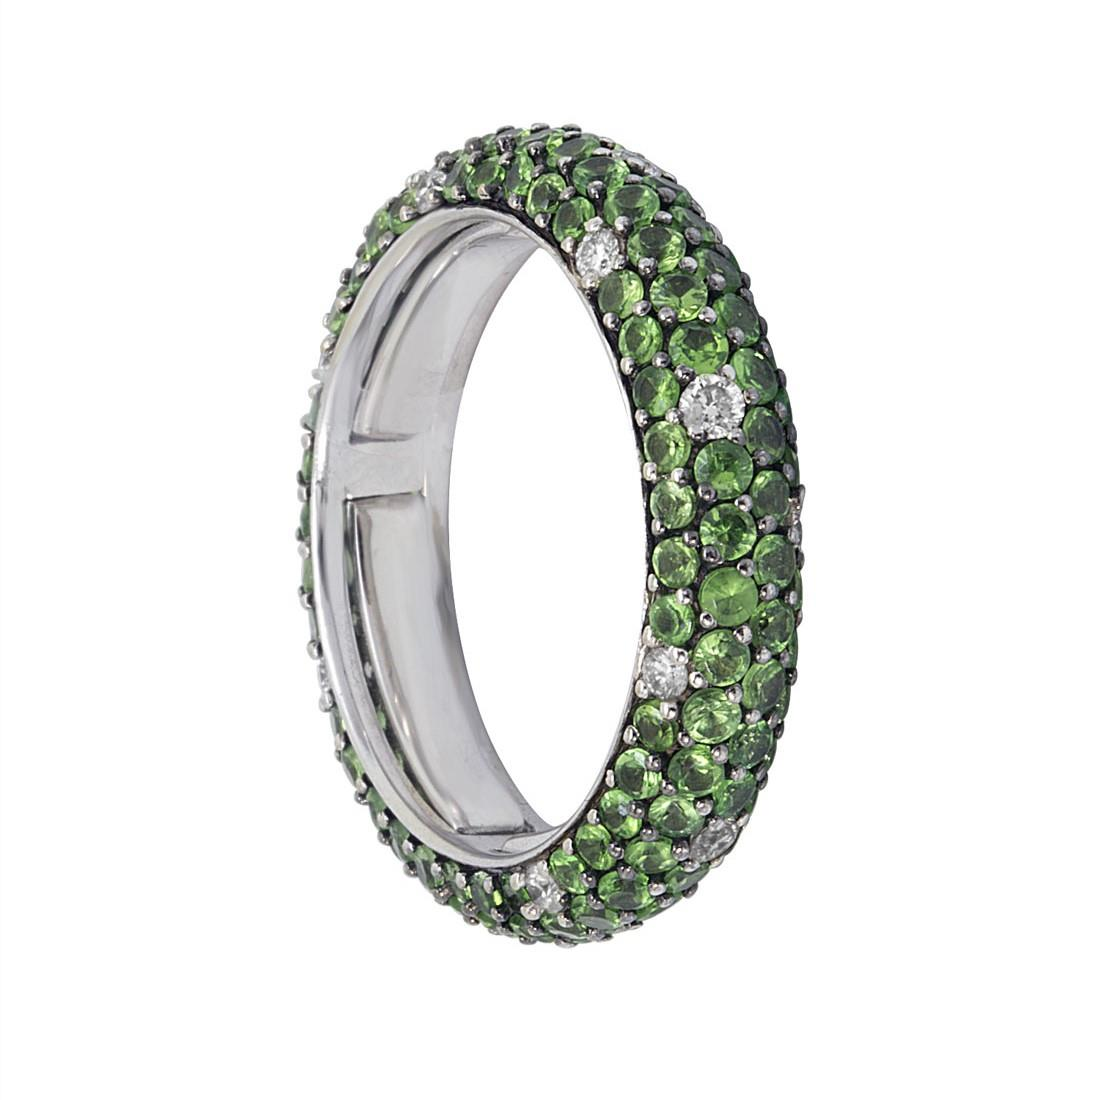 Anello eternity in oro bianco con diamanti ct 0.35 e tsavorite ct 3.00 - ALFIERI ST JOHN